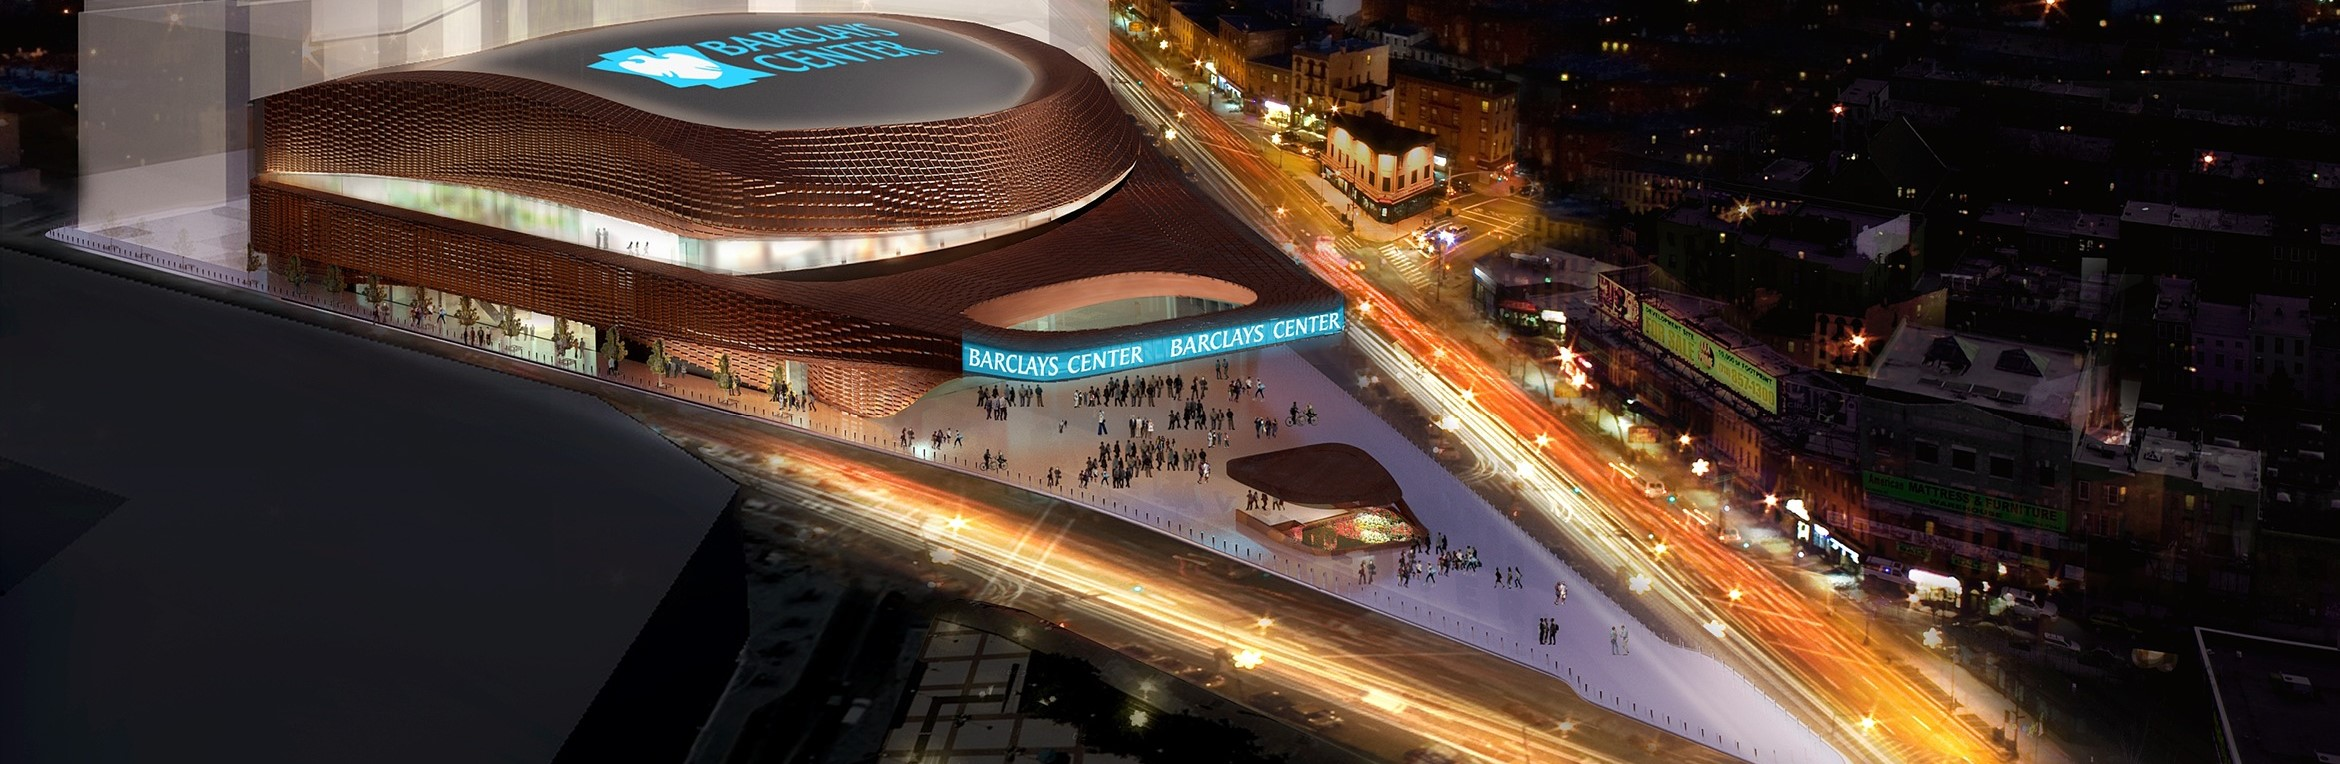 Barclay's Center, Home of The NBA NY Nets, dining, shopping and concert hall